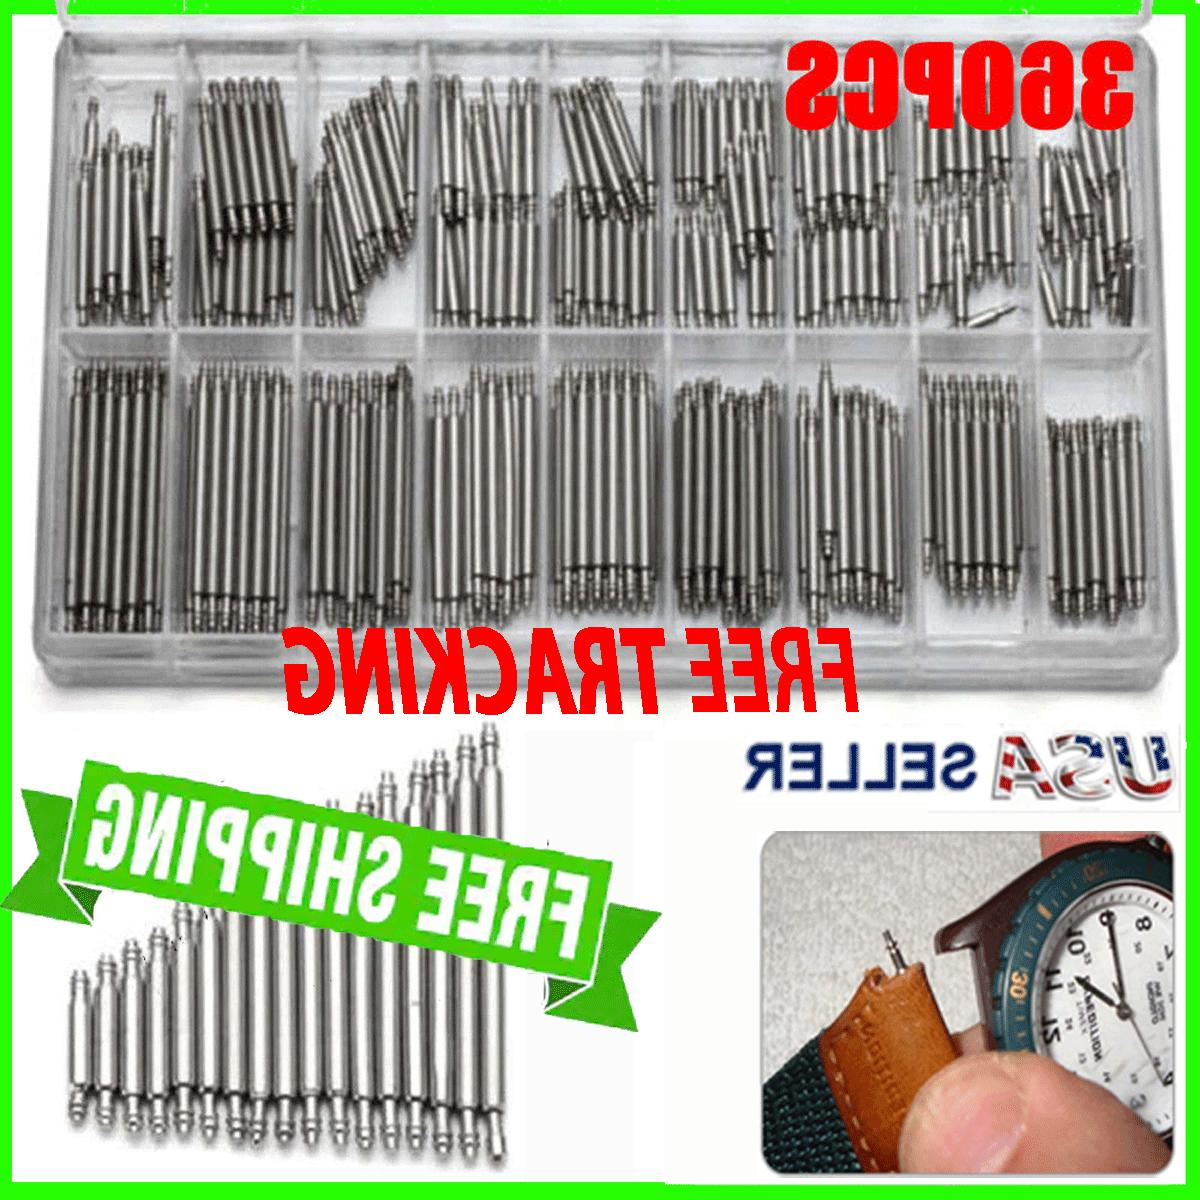 stainless steel watch band spring